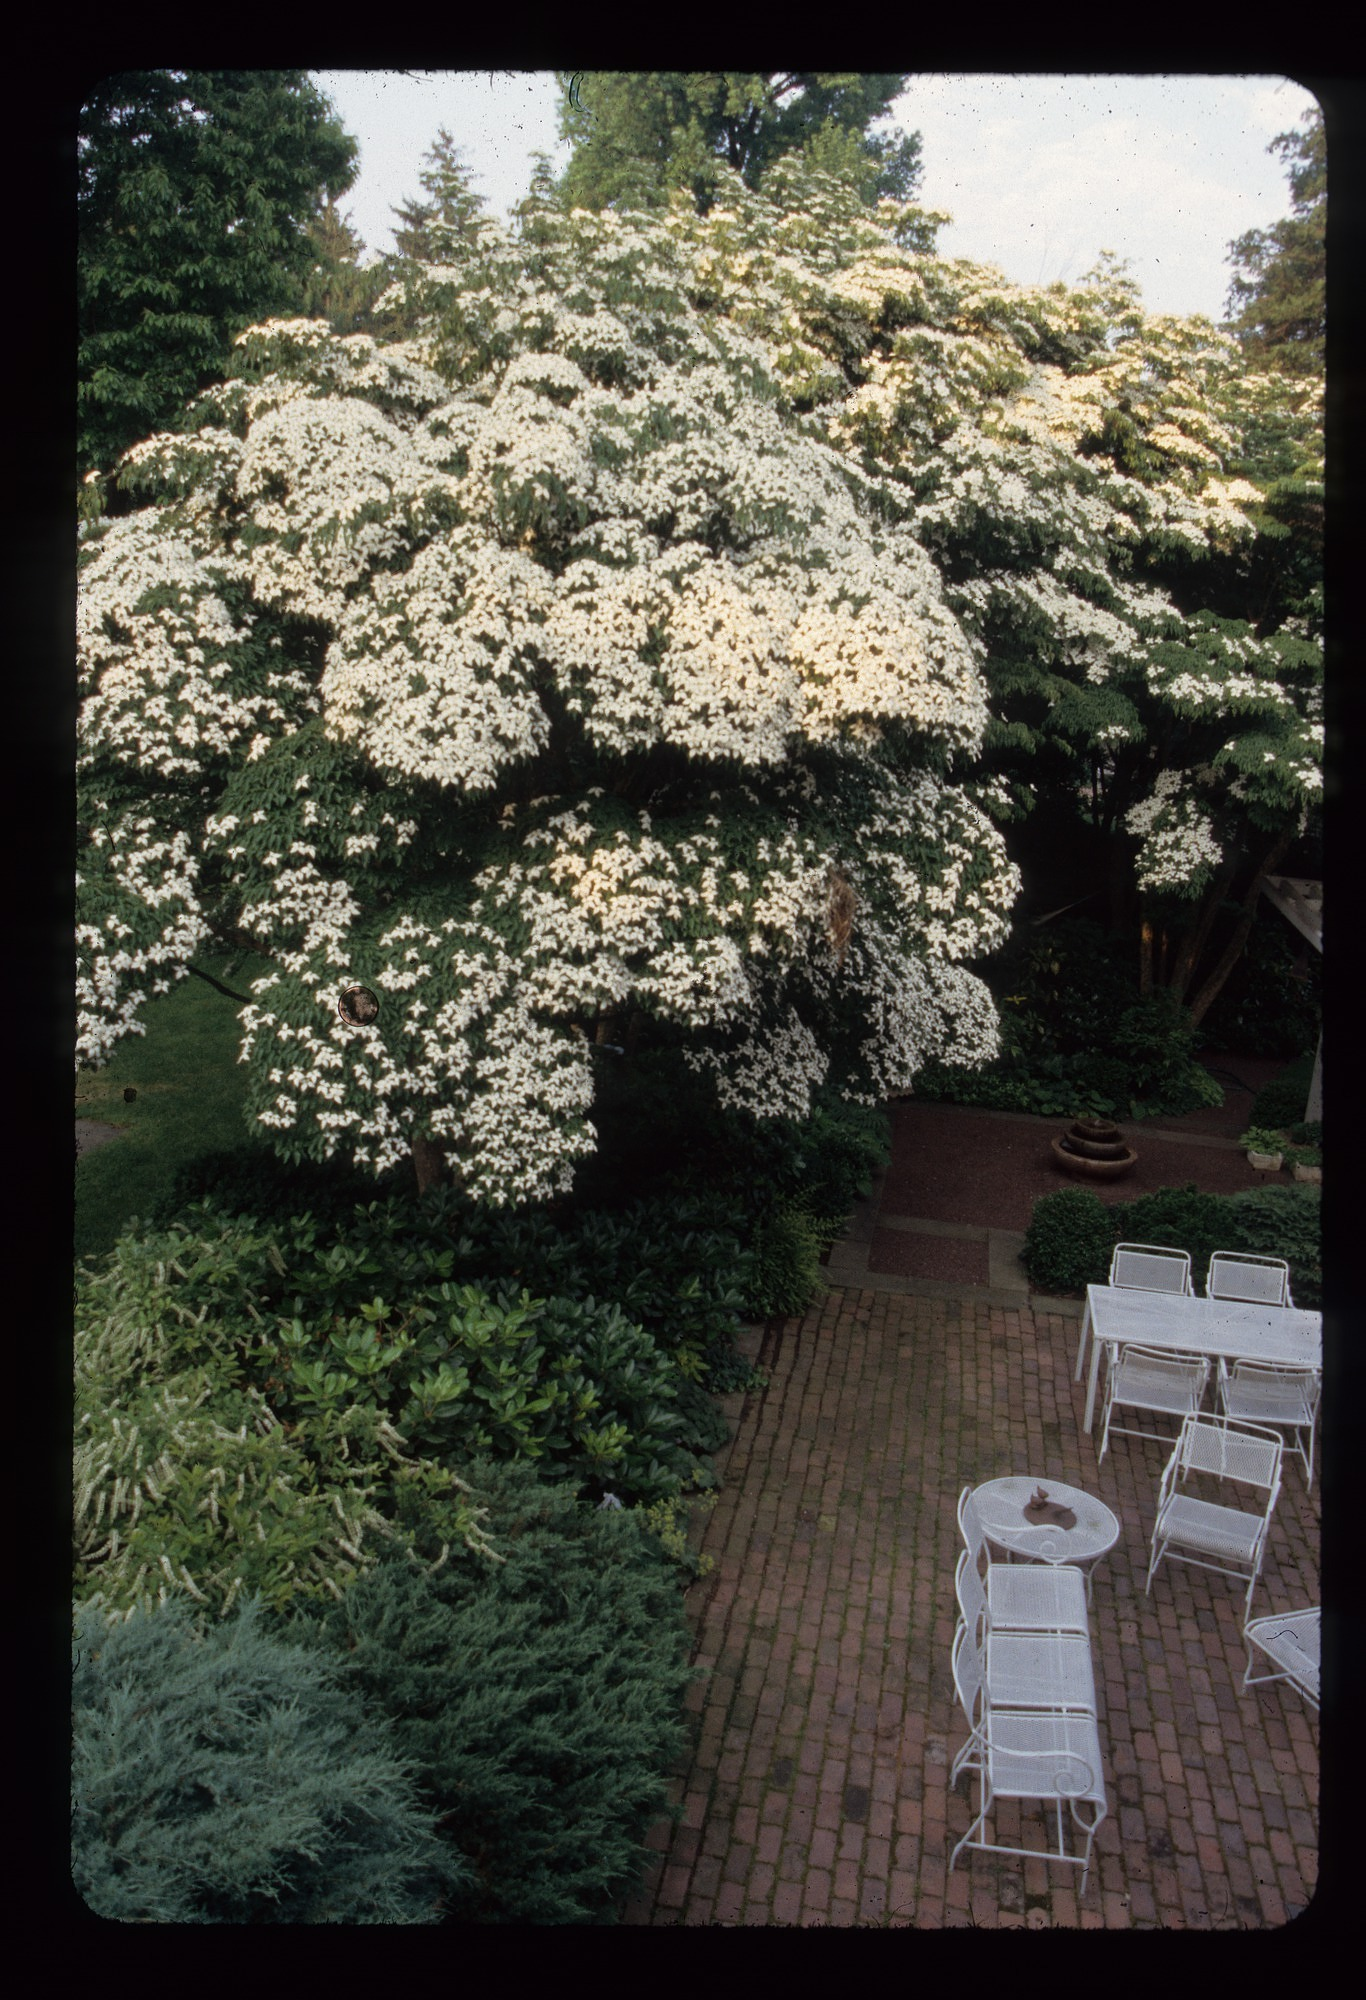 The arboretum introduced many ornamental trees and shrub varieties to American gardeners, such as the Kousa dogwood (Cornus kousa var. chinensis), originally native to Japan, Korea, and China.